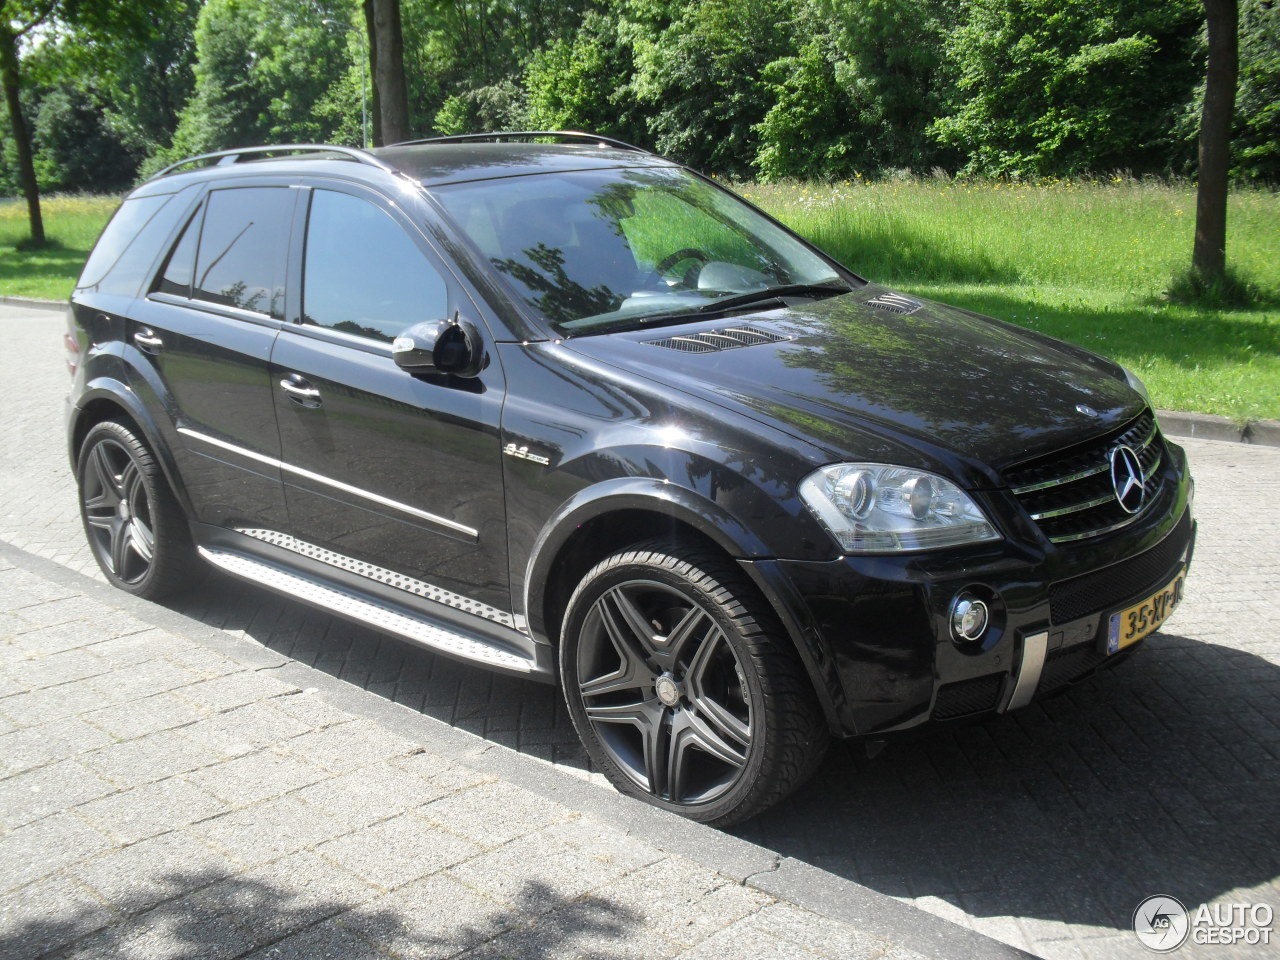 Mercedes benz ml 63 amg w164 20 may 2014 autogespot for Ml mercedes benz